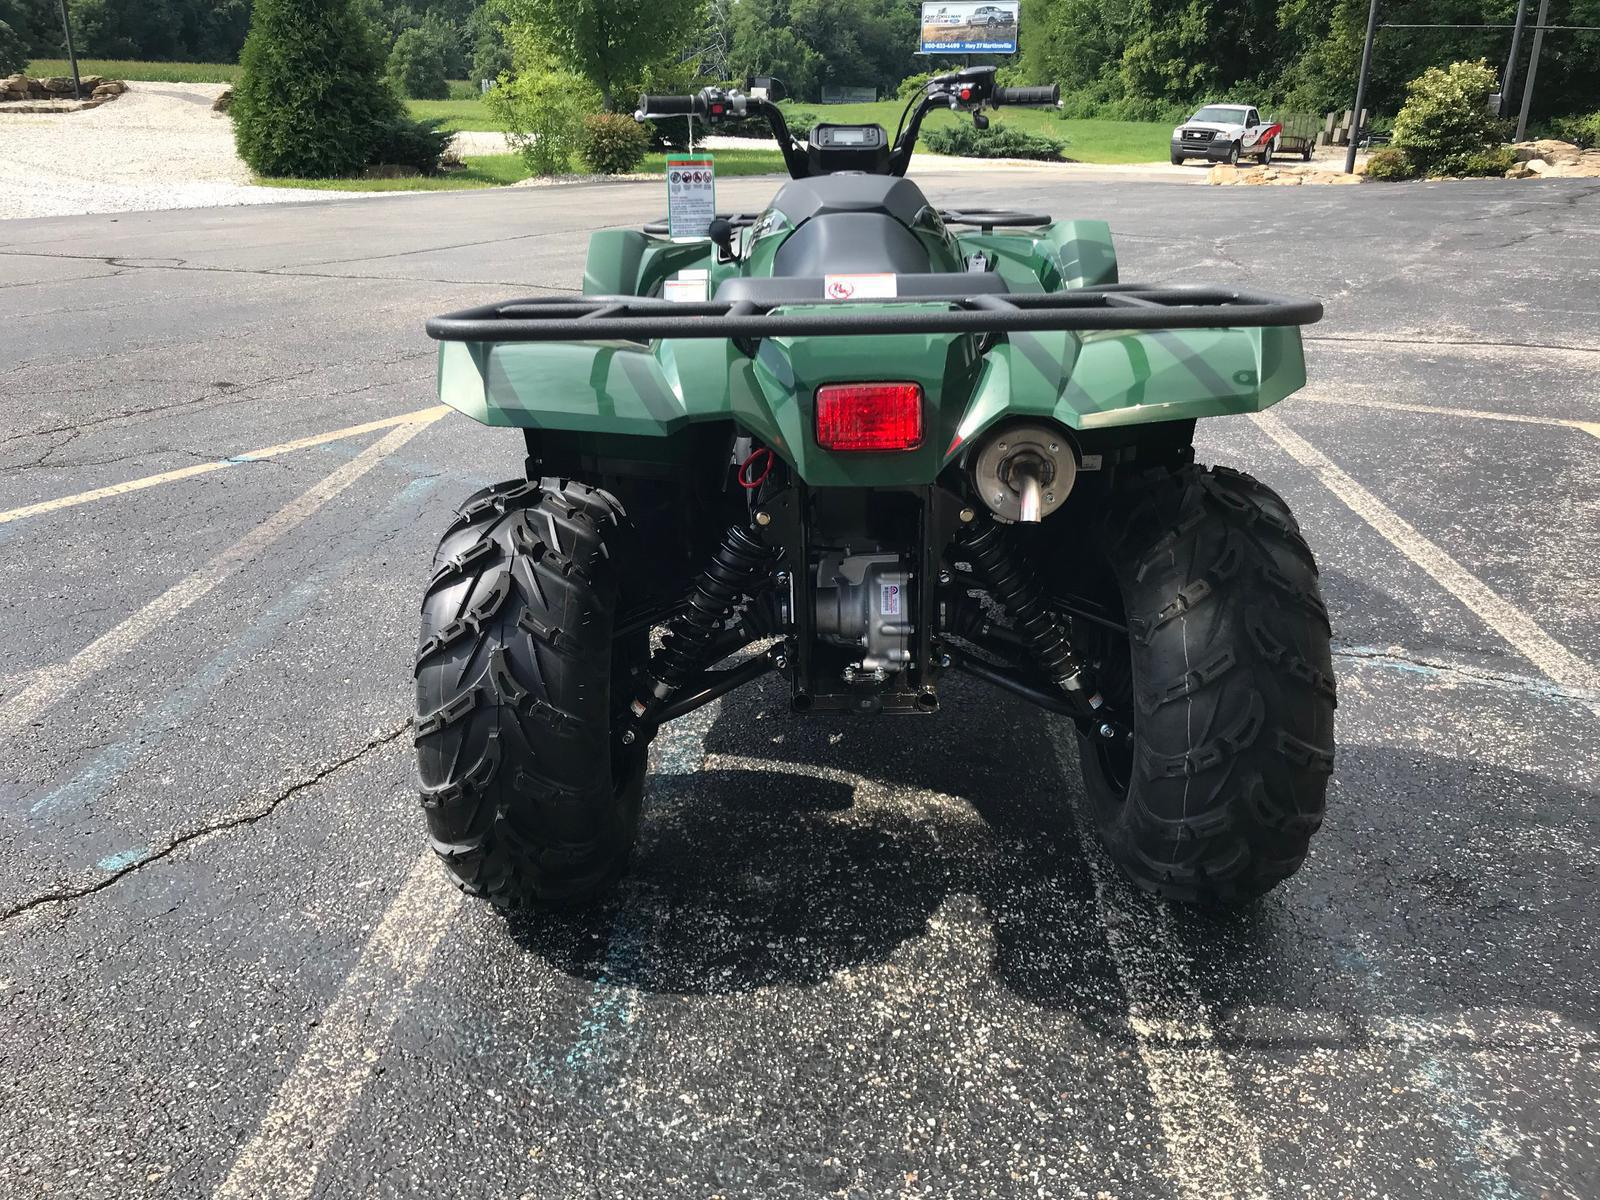 2018 Yamaha Kodiak 450 Awd For Sale In Martinsville Flat Out Fuel Filter Green 7